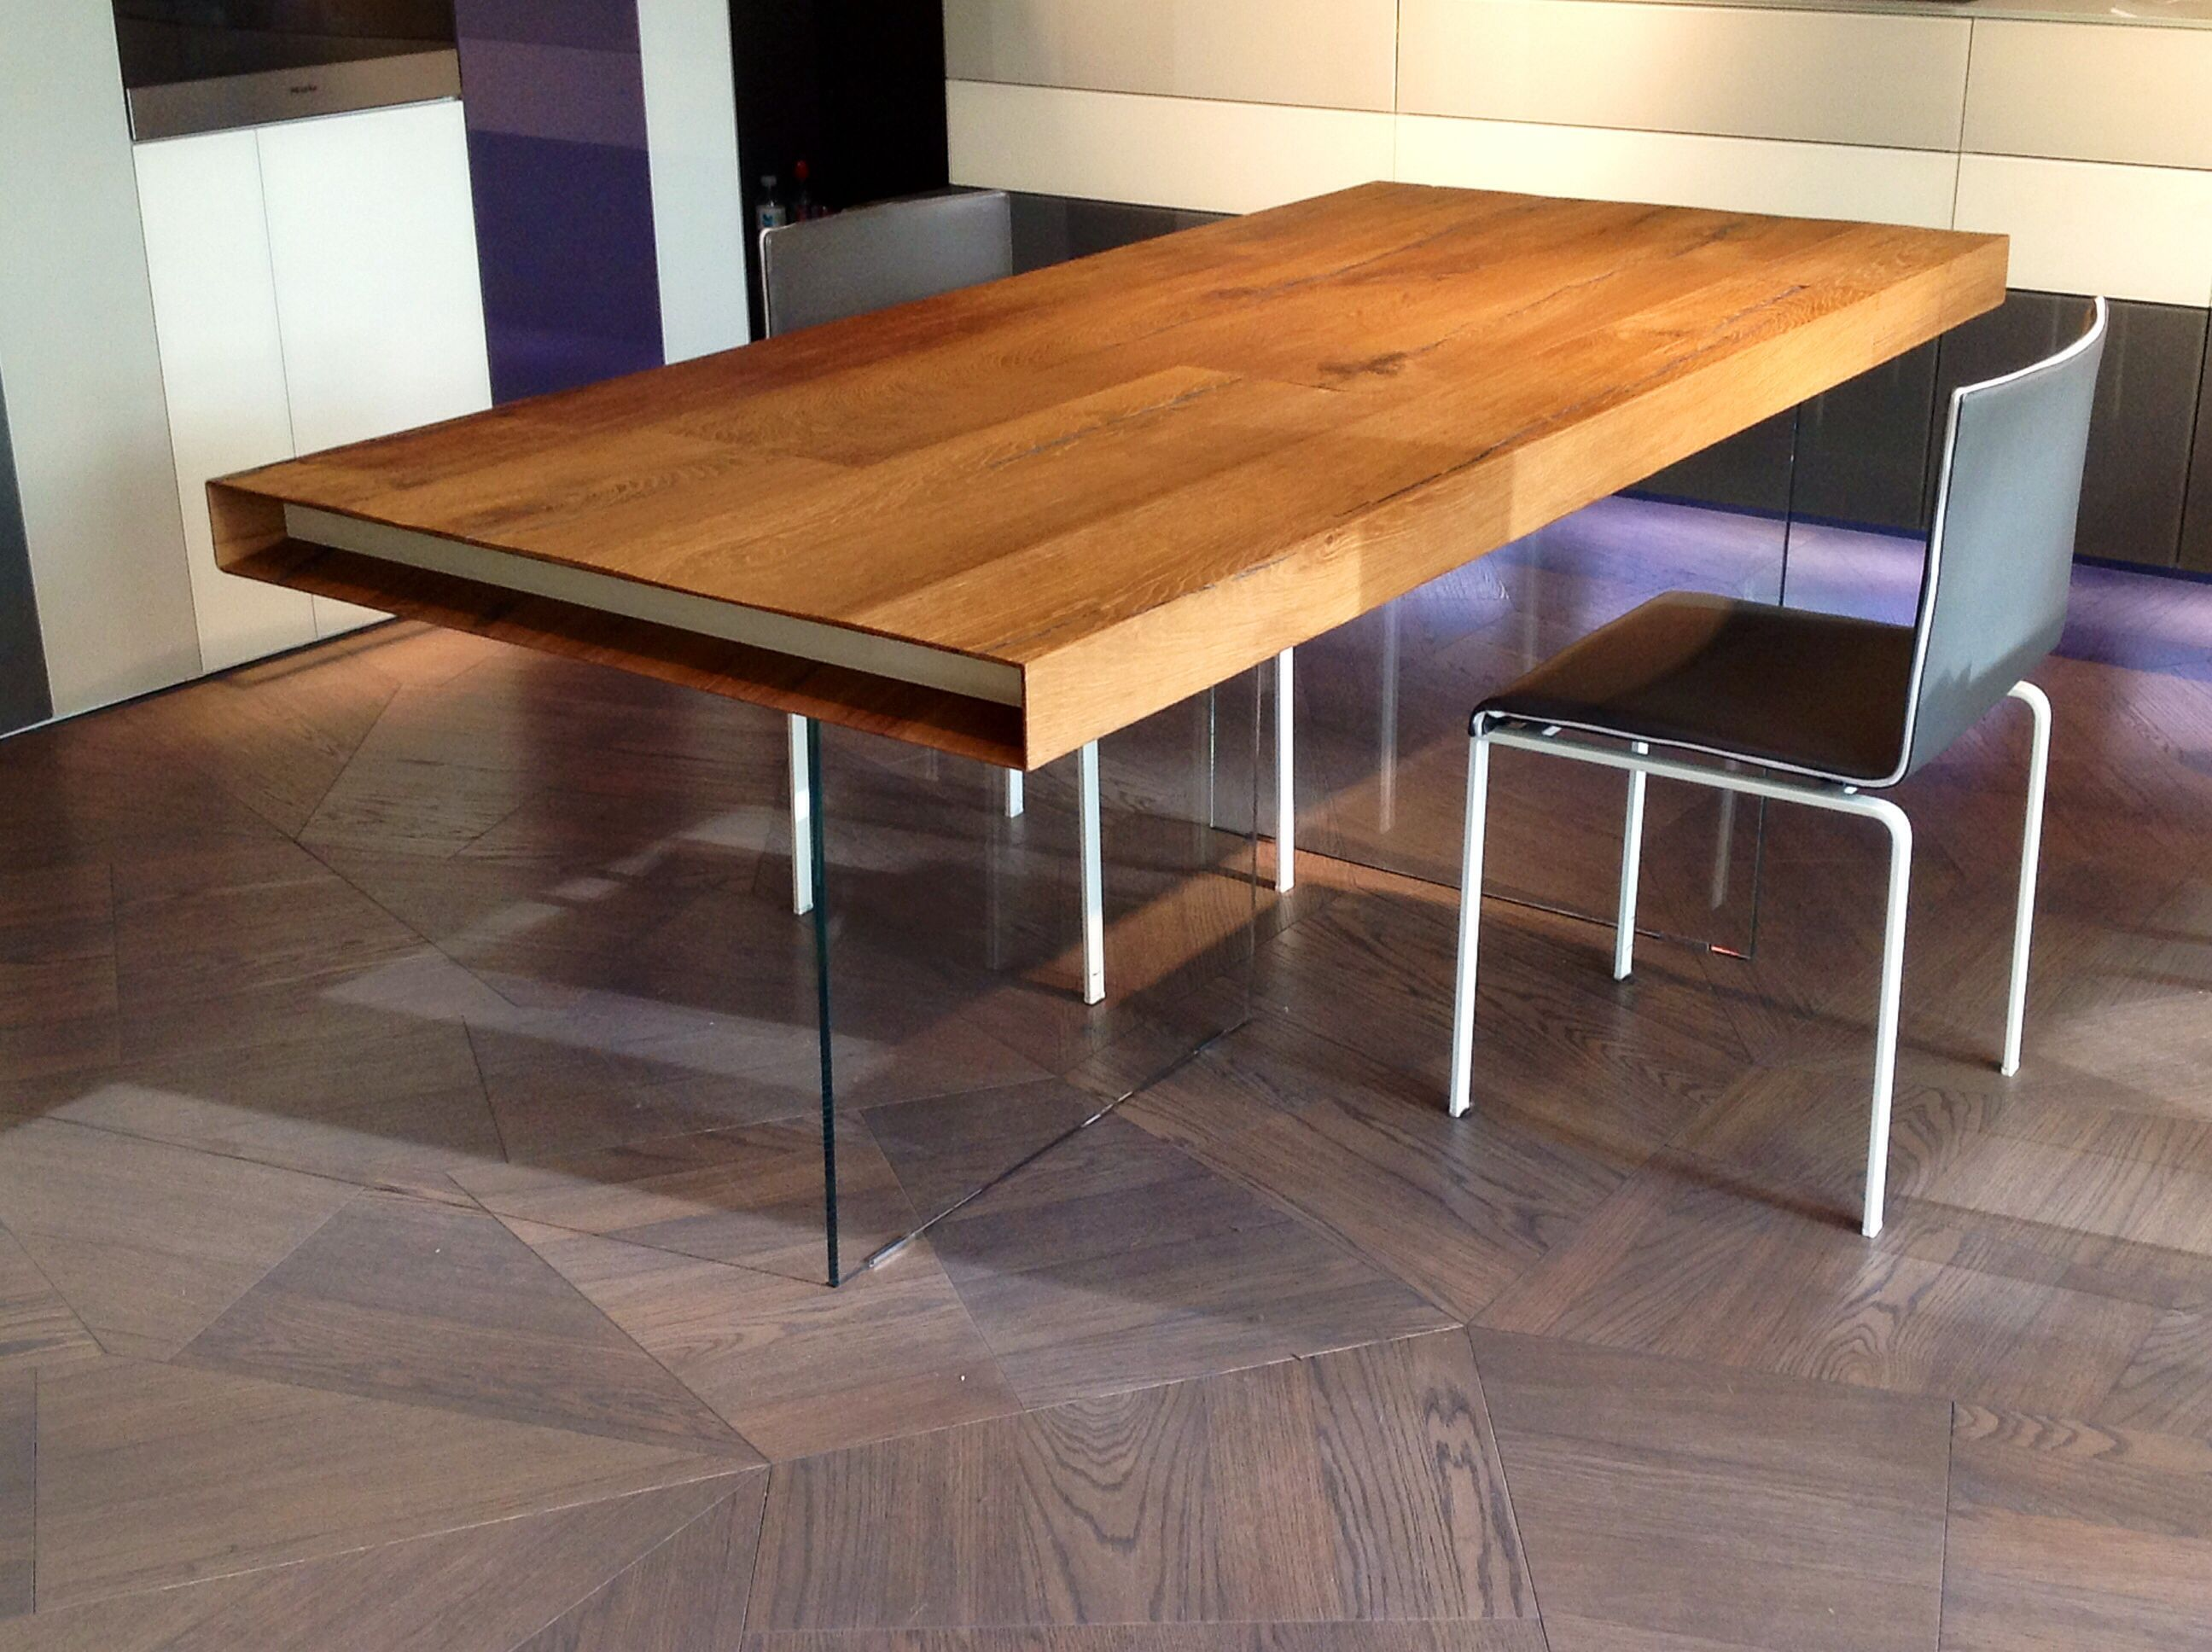 Lago Tavolo ~ The table air wildwood by lago is always a best seller. the table